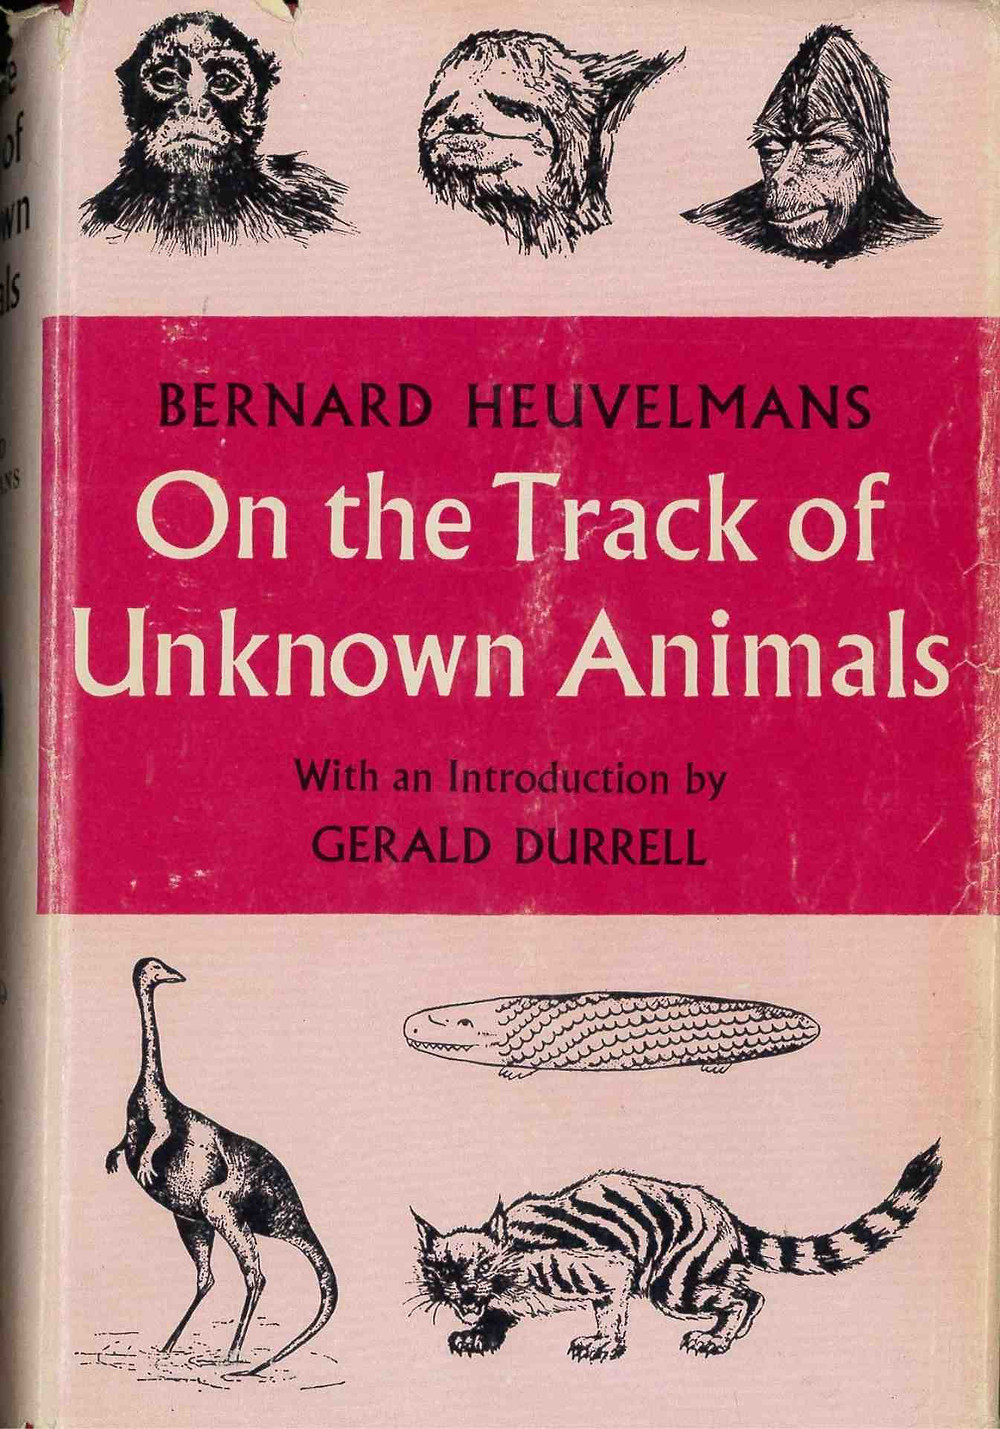 Image of Bernard Heuvelmans book On the Track of Unknown Animals